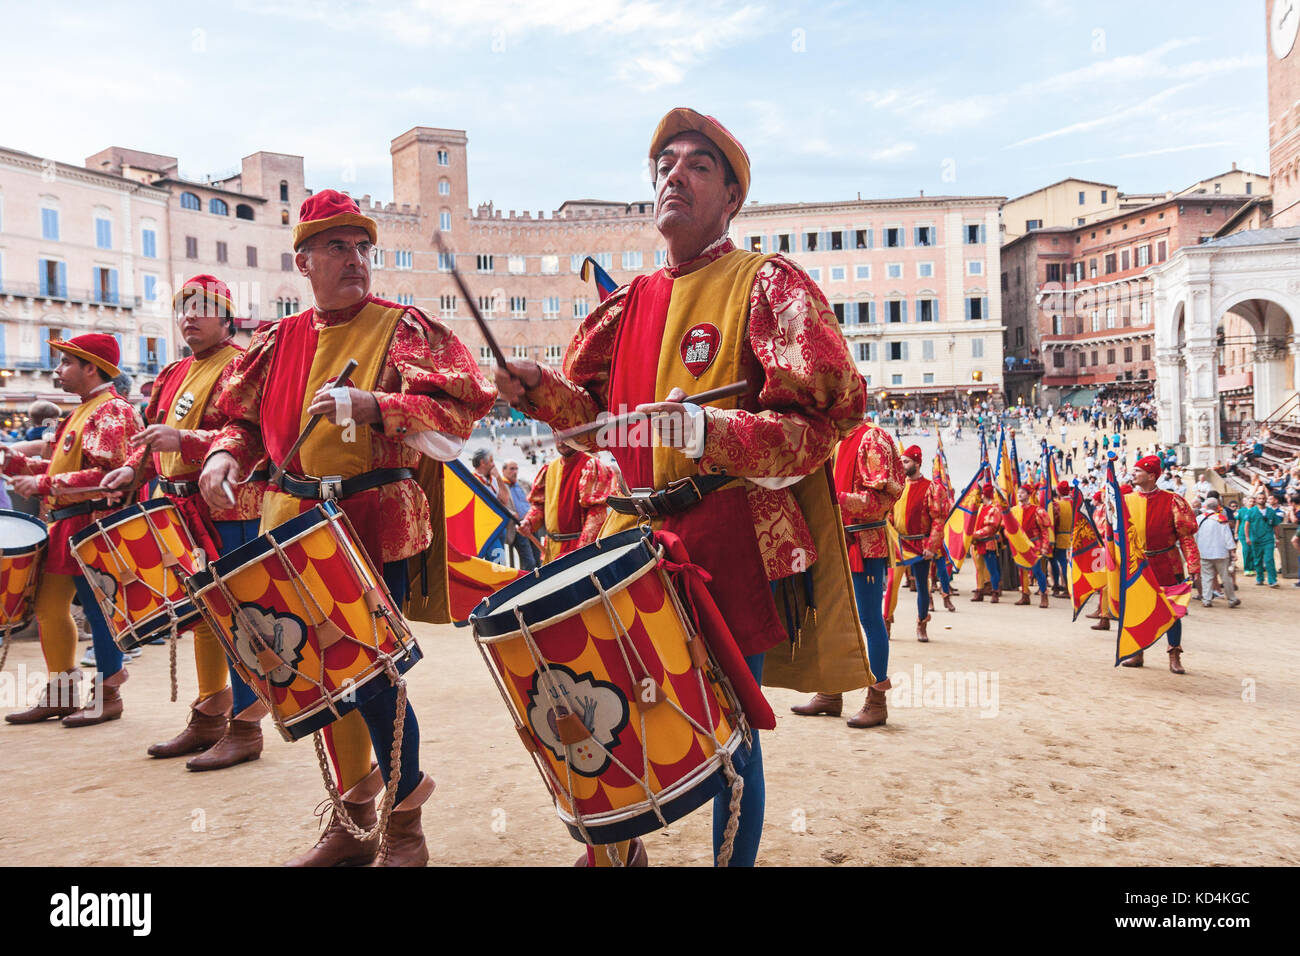 Men musicians with drums in historical colorful costumes celebrating at traditional Palio horse race parade in Siena, Stock Photo